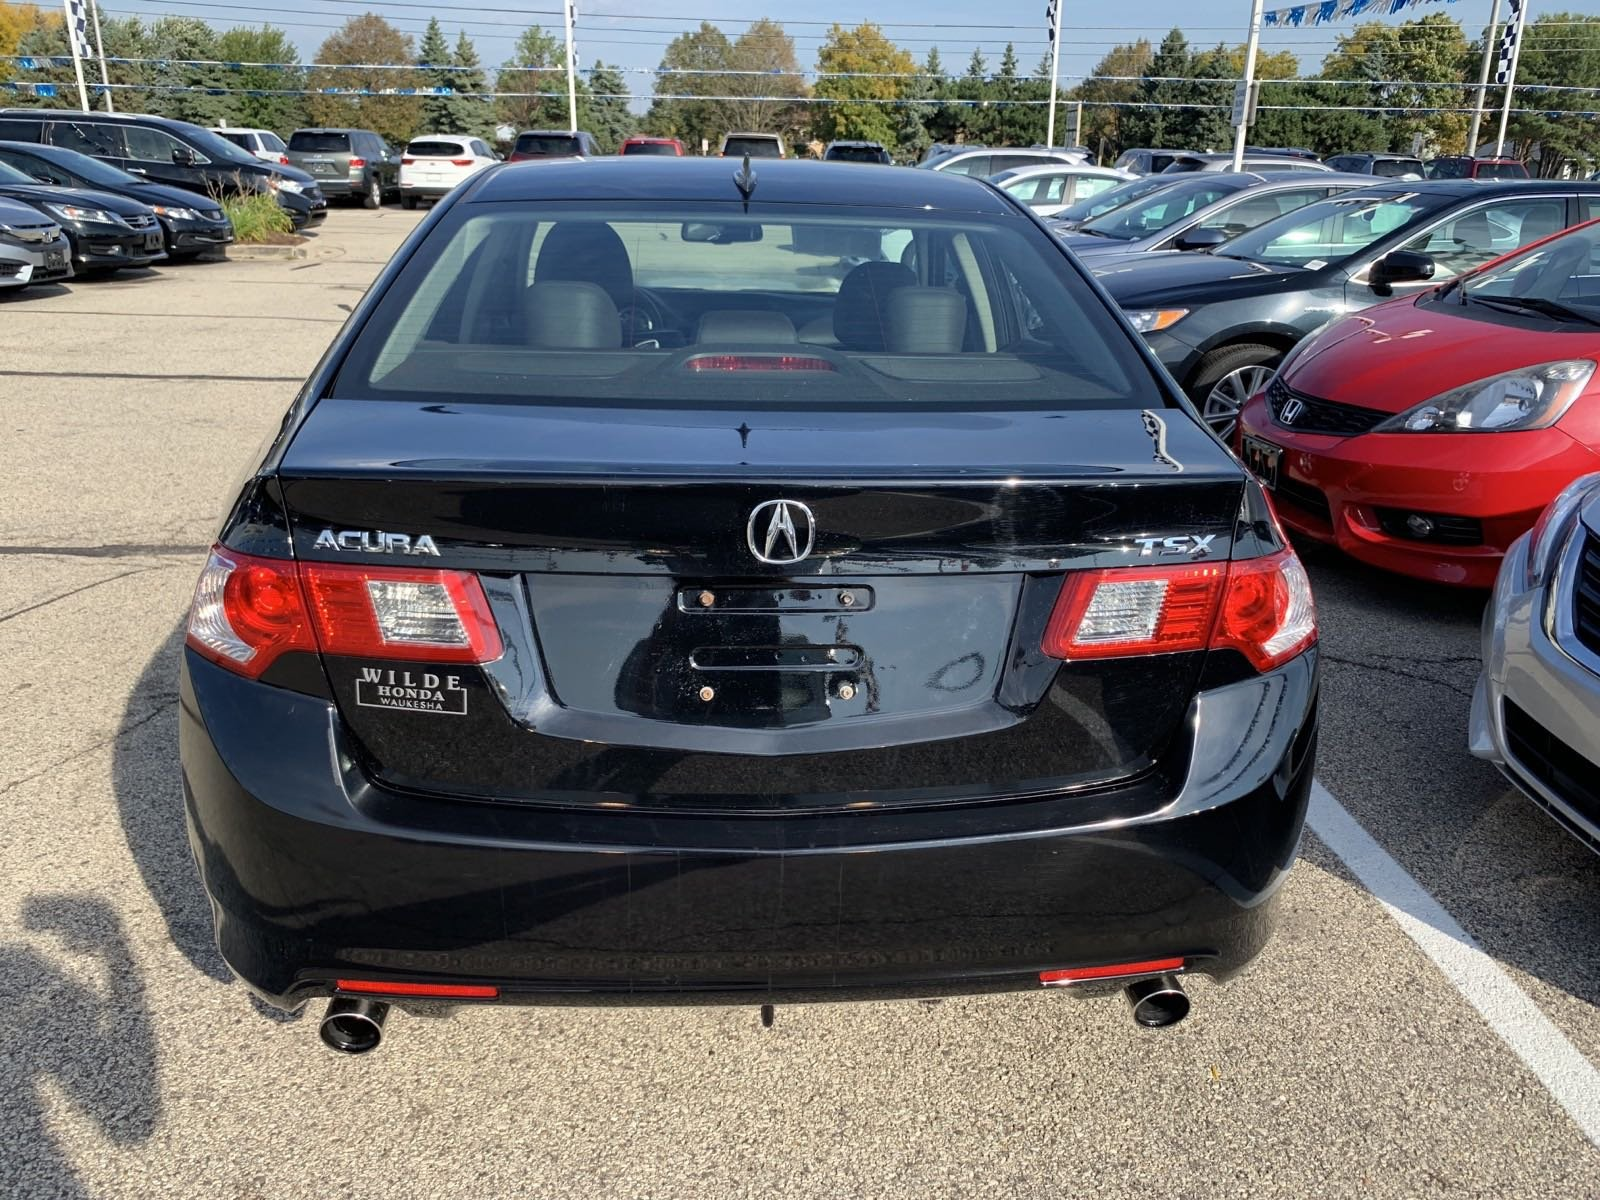 New 2006 Acura Tsx Headlights